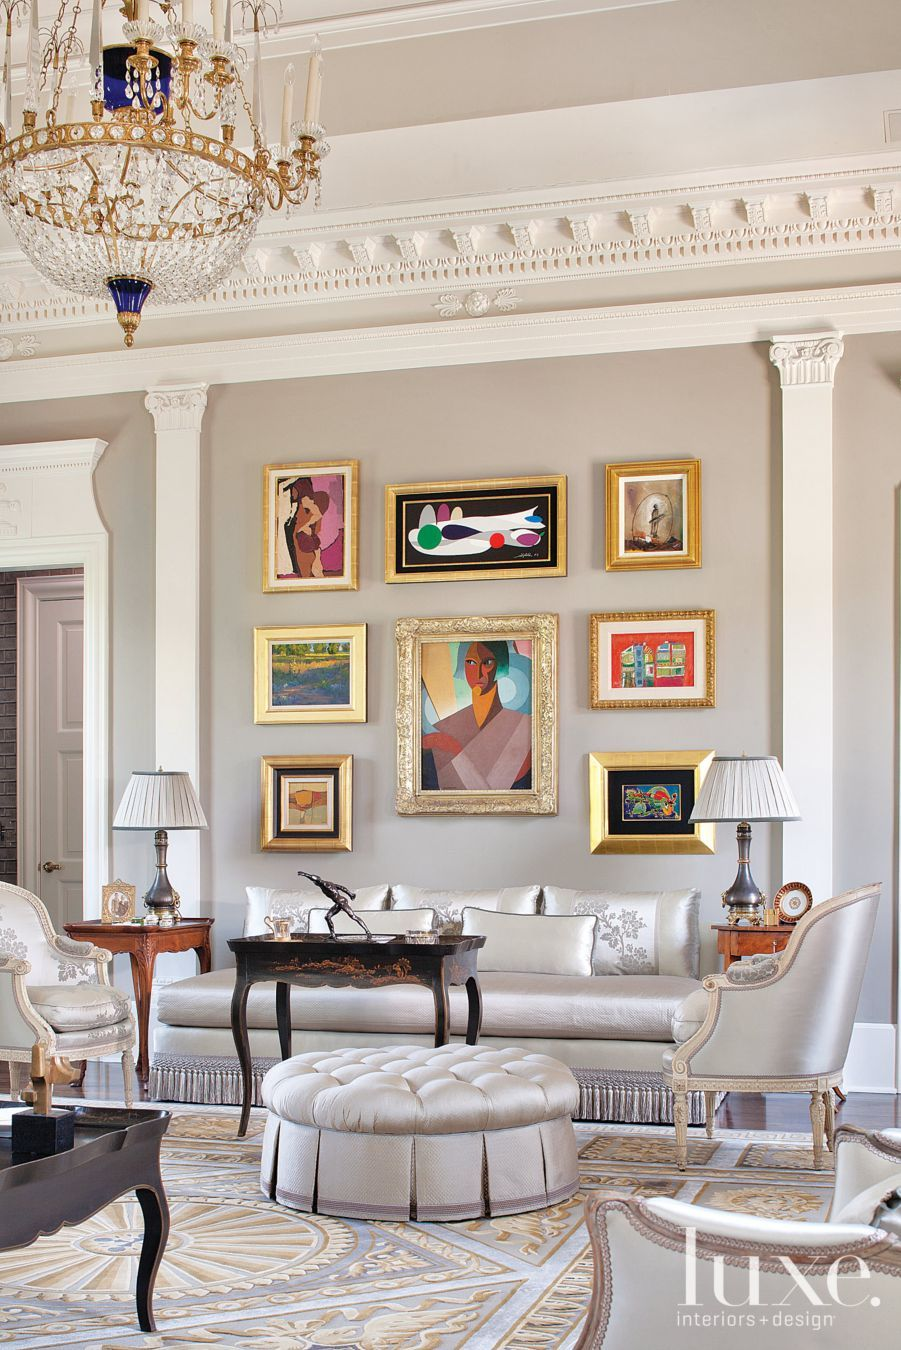 Luxury Showcase For Living Room Royal Art Deco: Mackle Construction - Luxe Interiors + Design